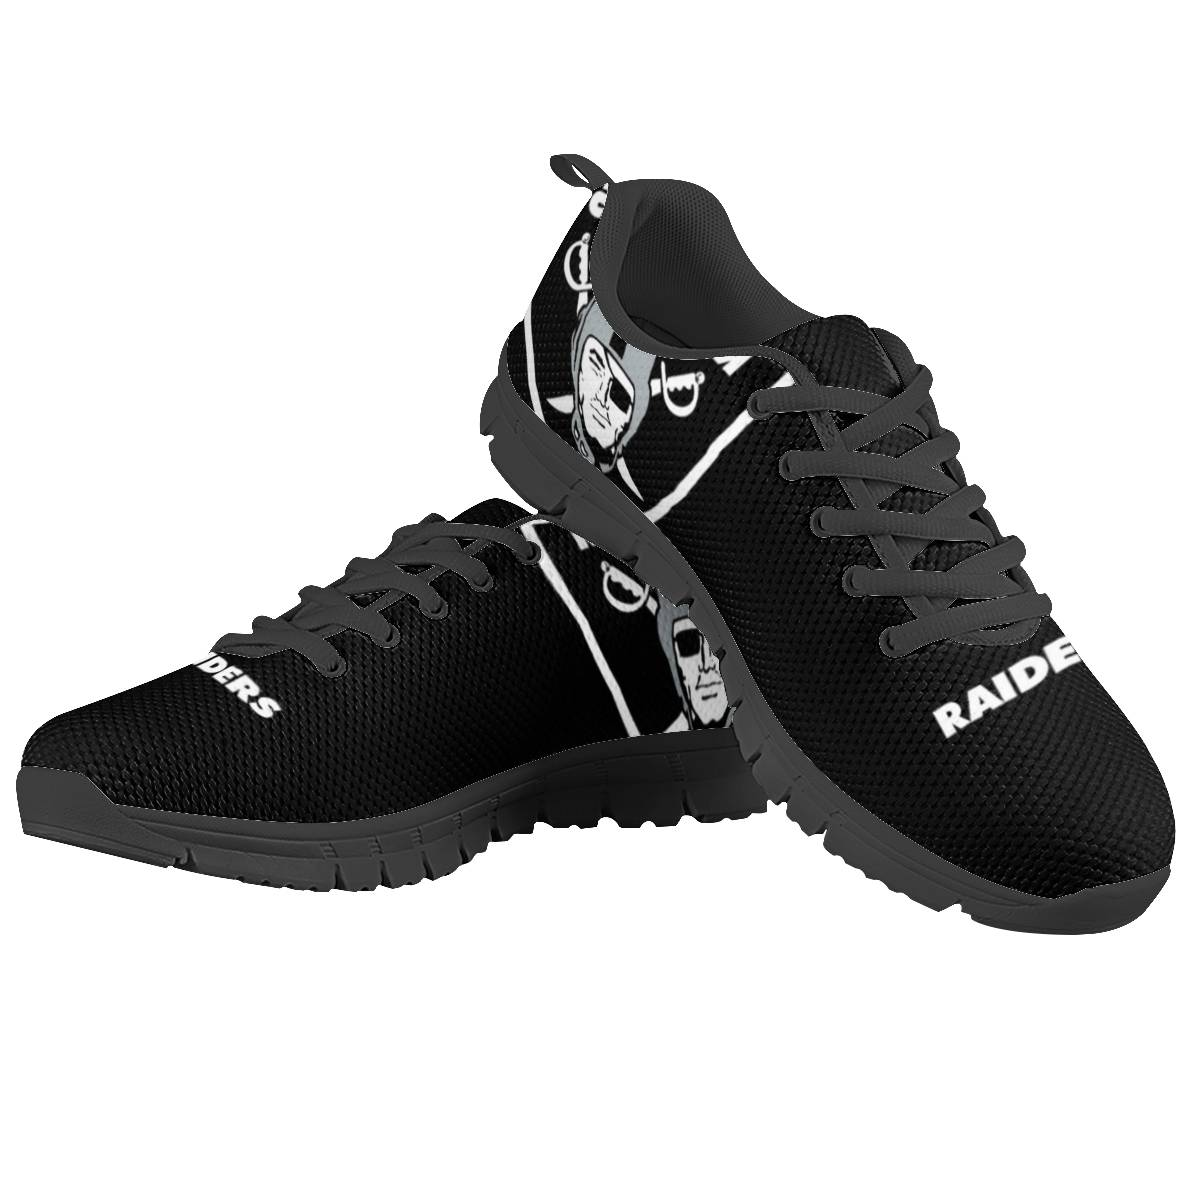 Men's Las Vegas Raiders AQ Running Shoes 001